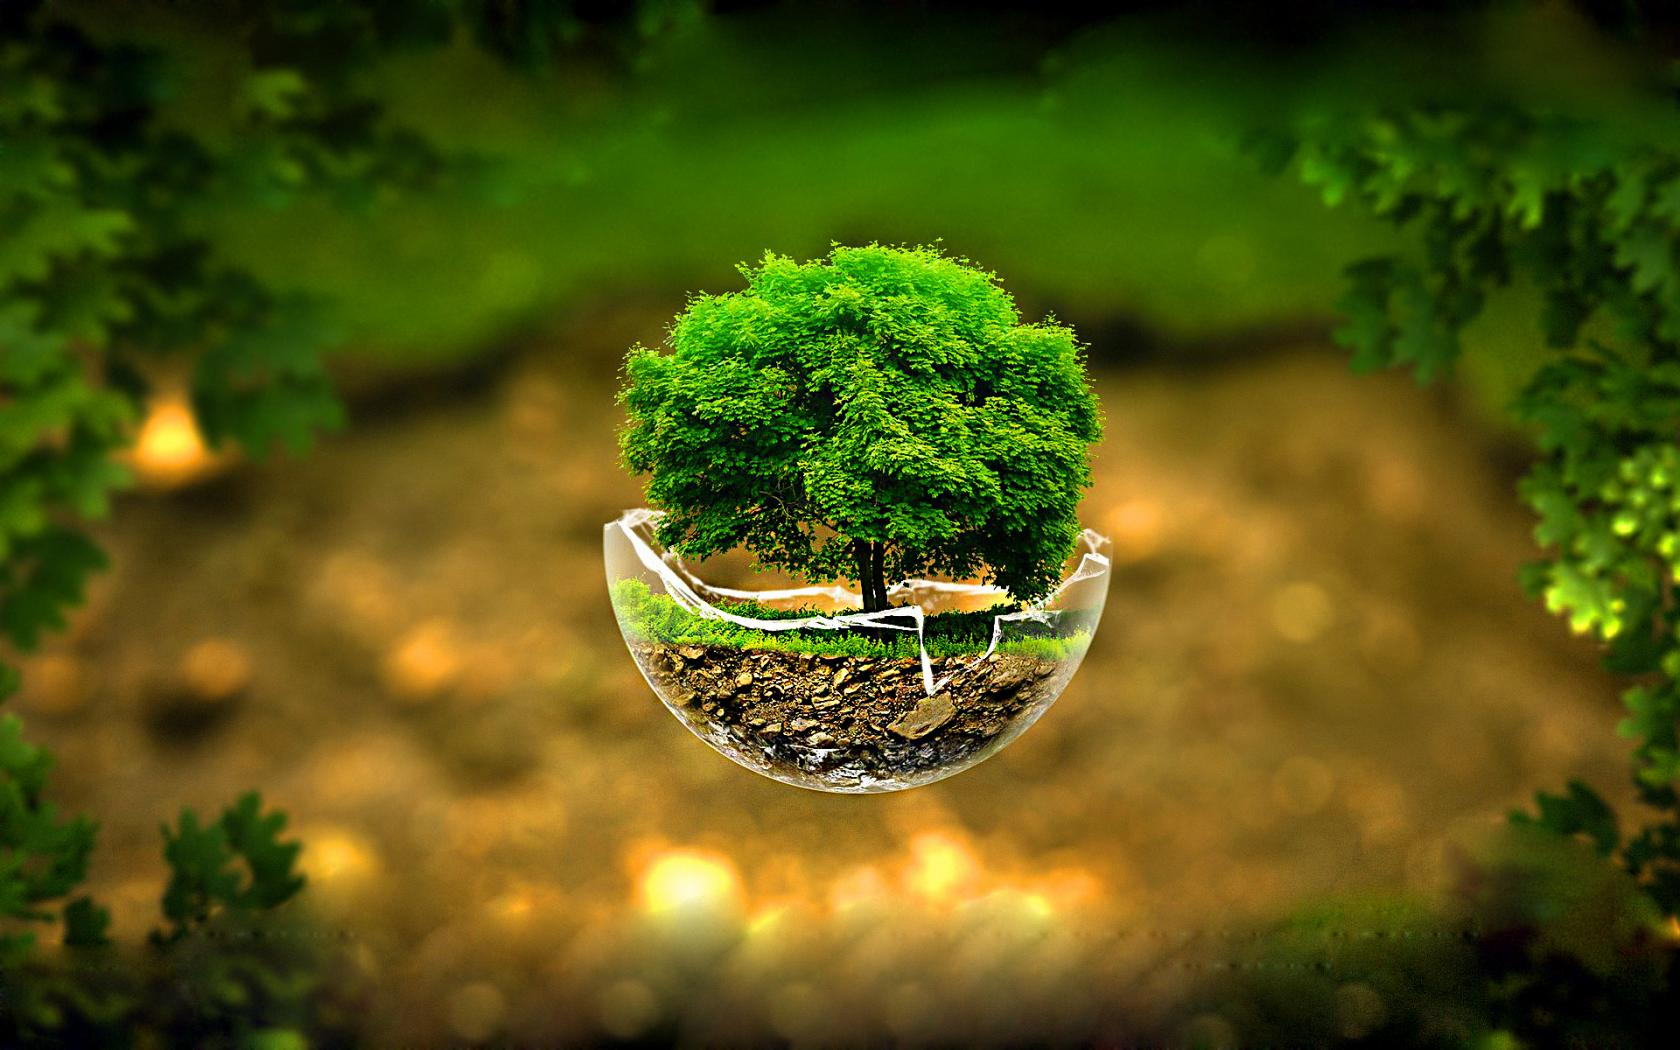 3d nature images hd with flying tree on broken glass hd wallpapers wallpapers download - Hd images download ...